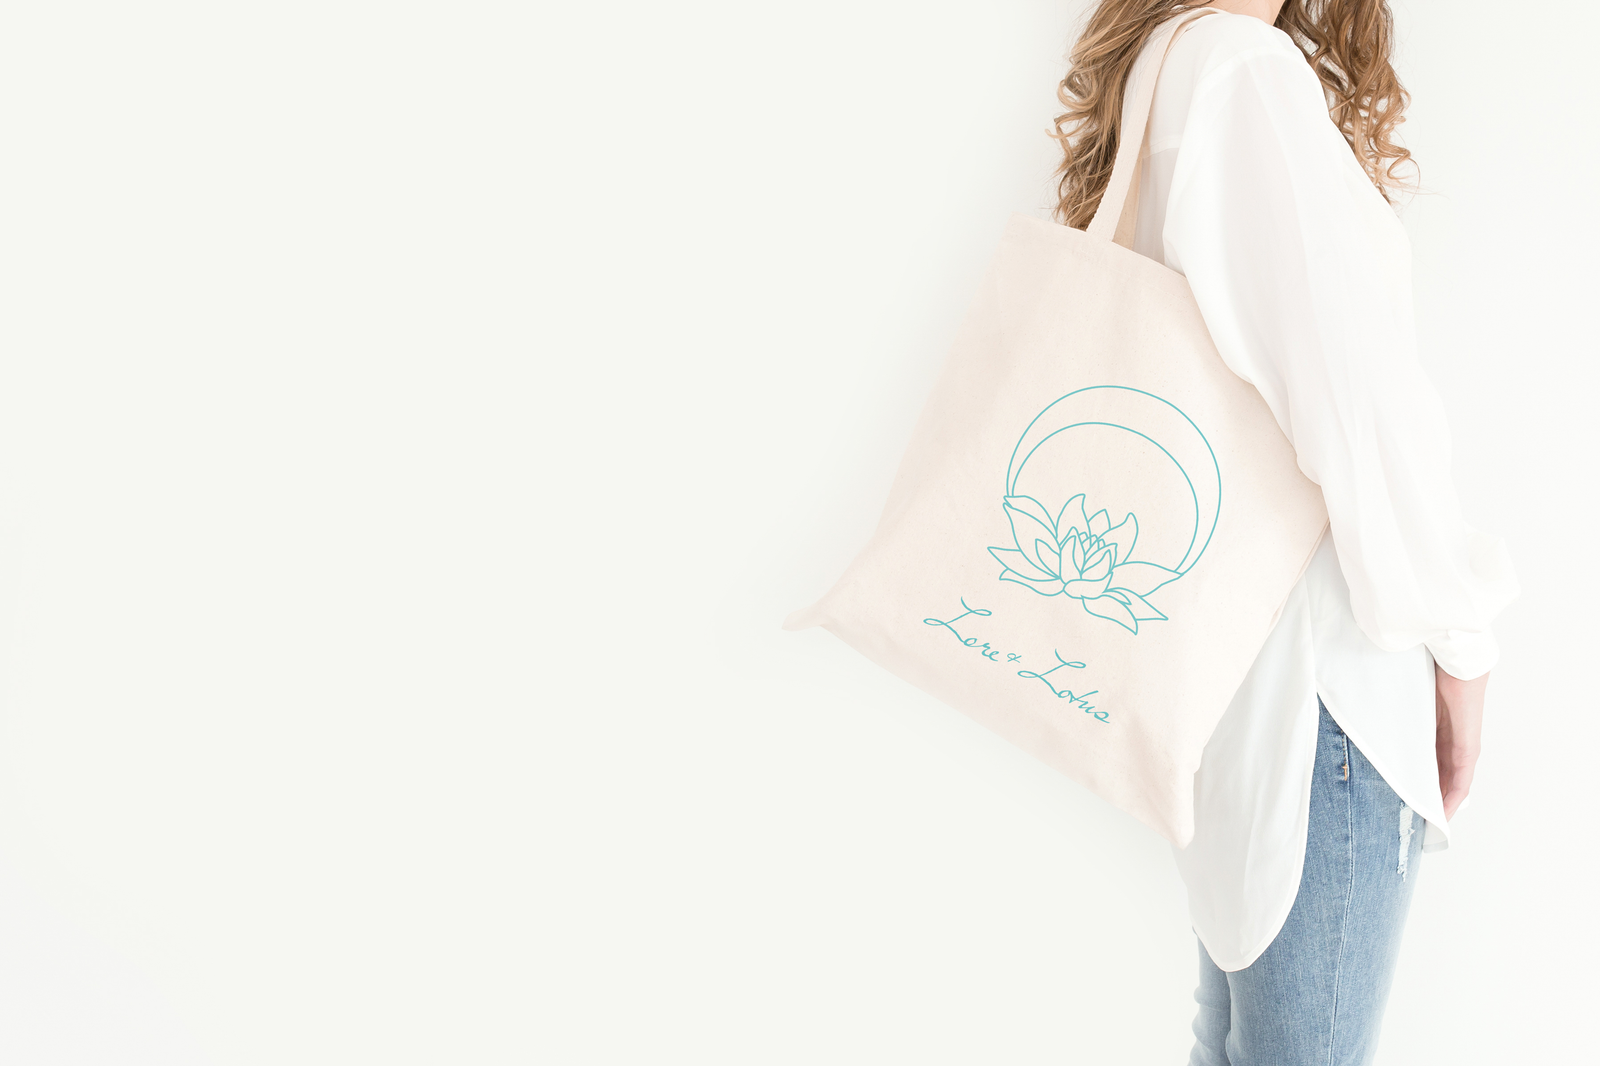 haute-stock-photography-loreandlotus-logo